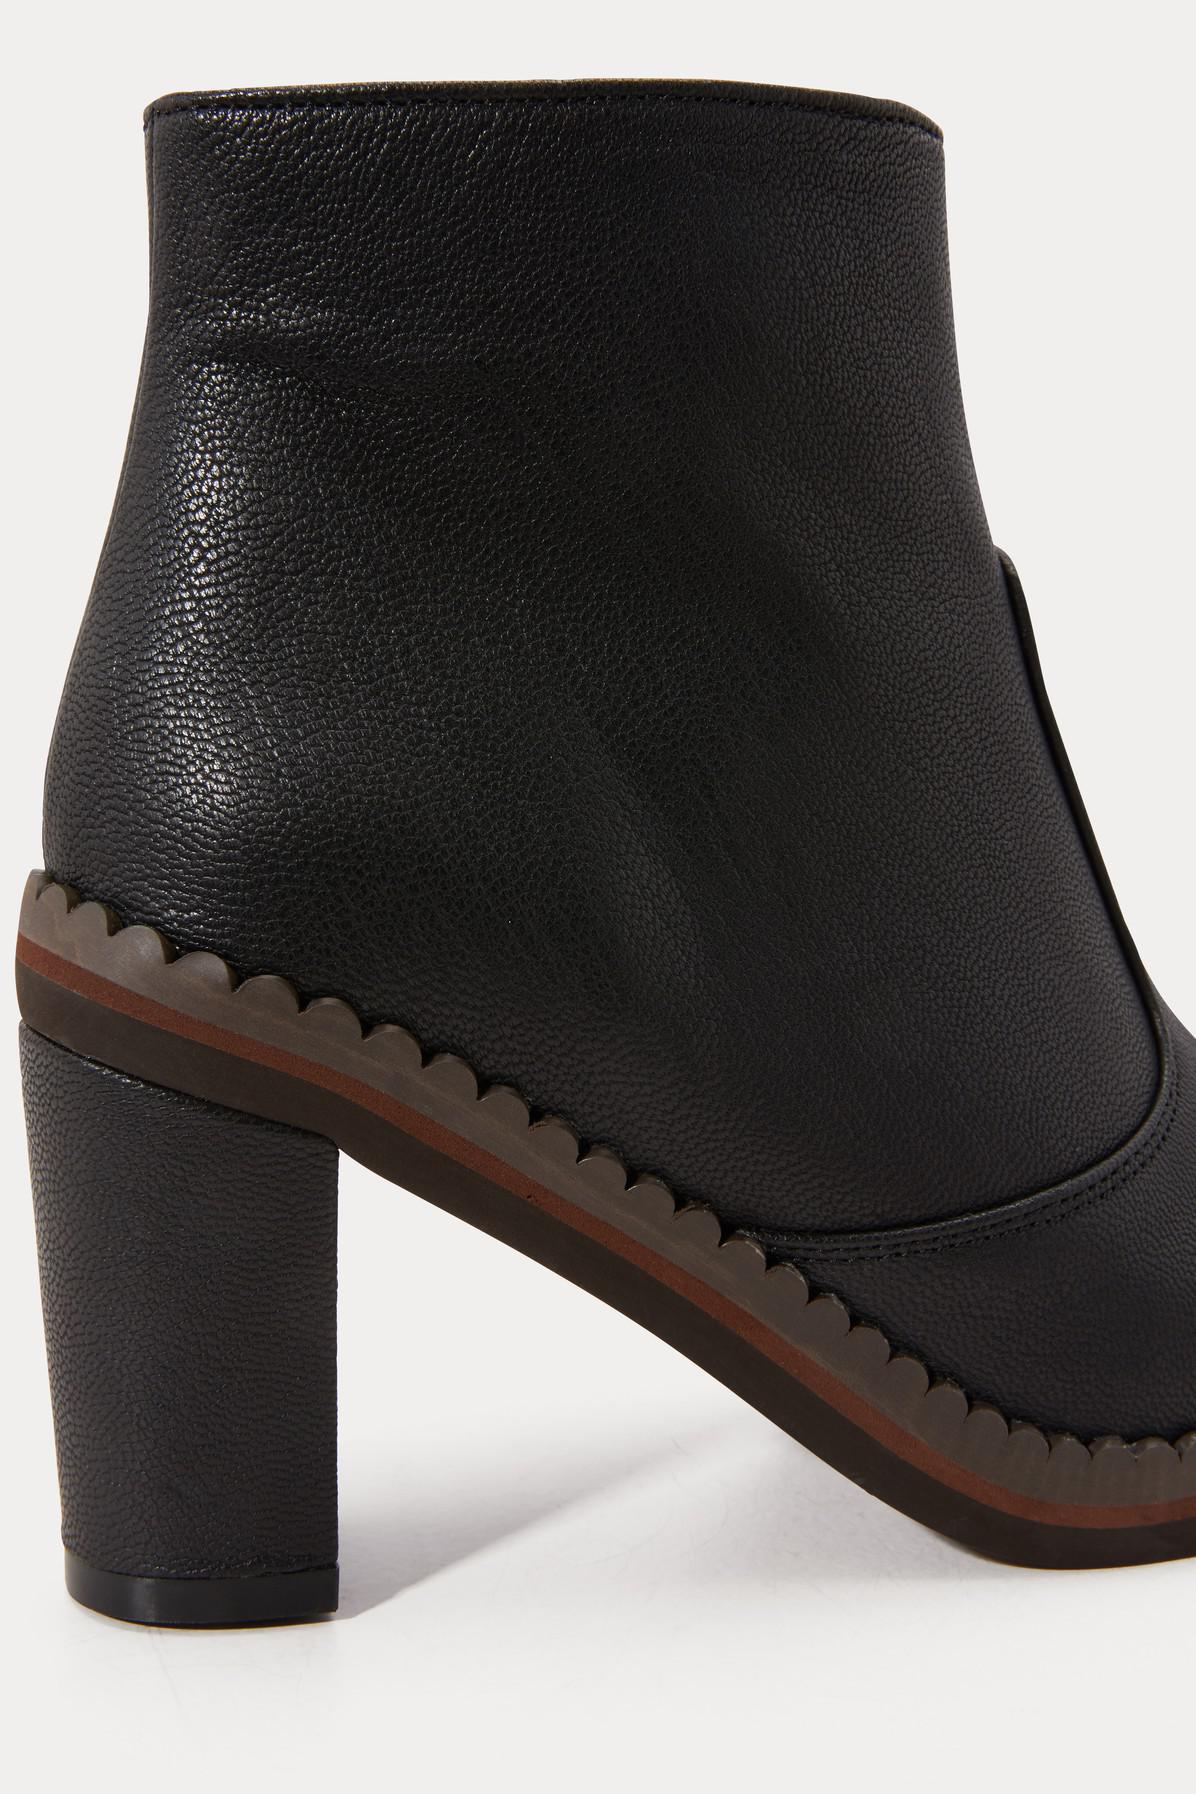 105850e3eb See By Chloé Stasya Ankle Boots in Black - Lyst